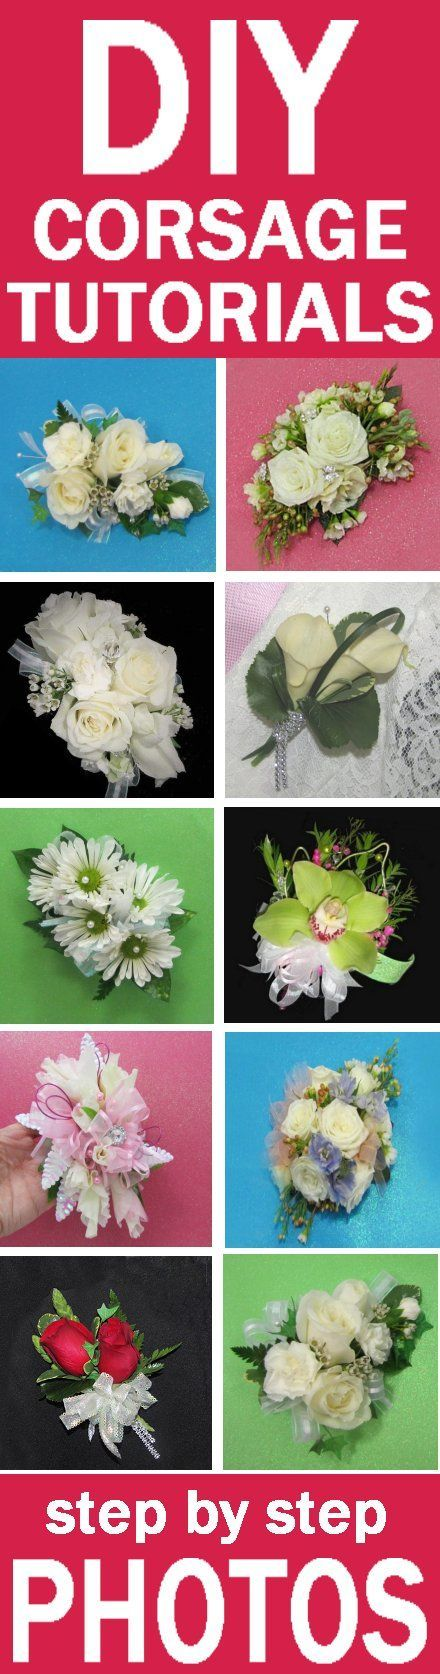 Make Your Own Wedding Flowers - Easy Tutorials Learn how a florist makes corsages, boutonnieres, bridal bouquets, church decorations and reception centerpieces.